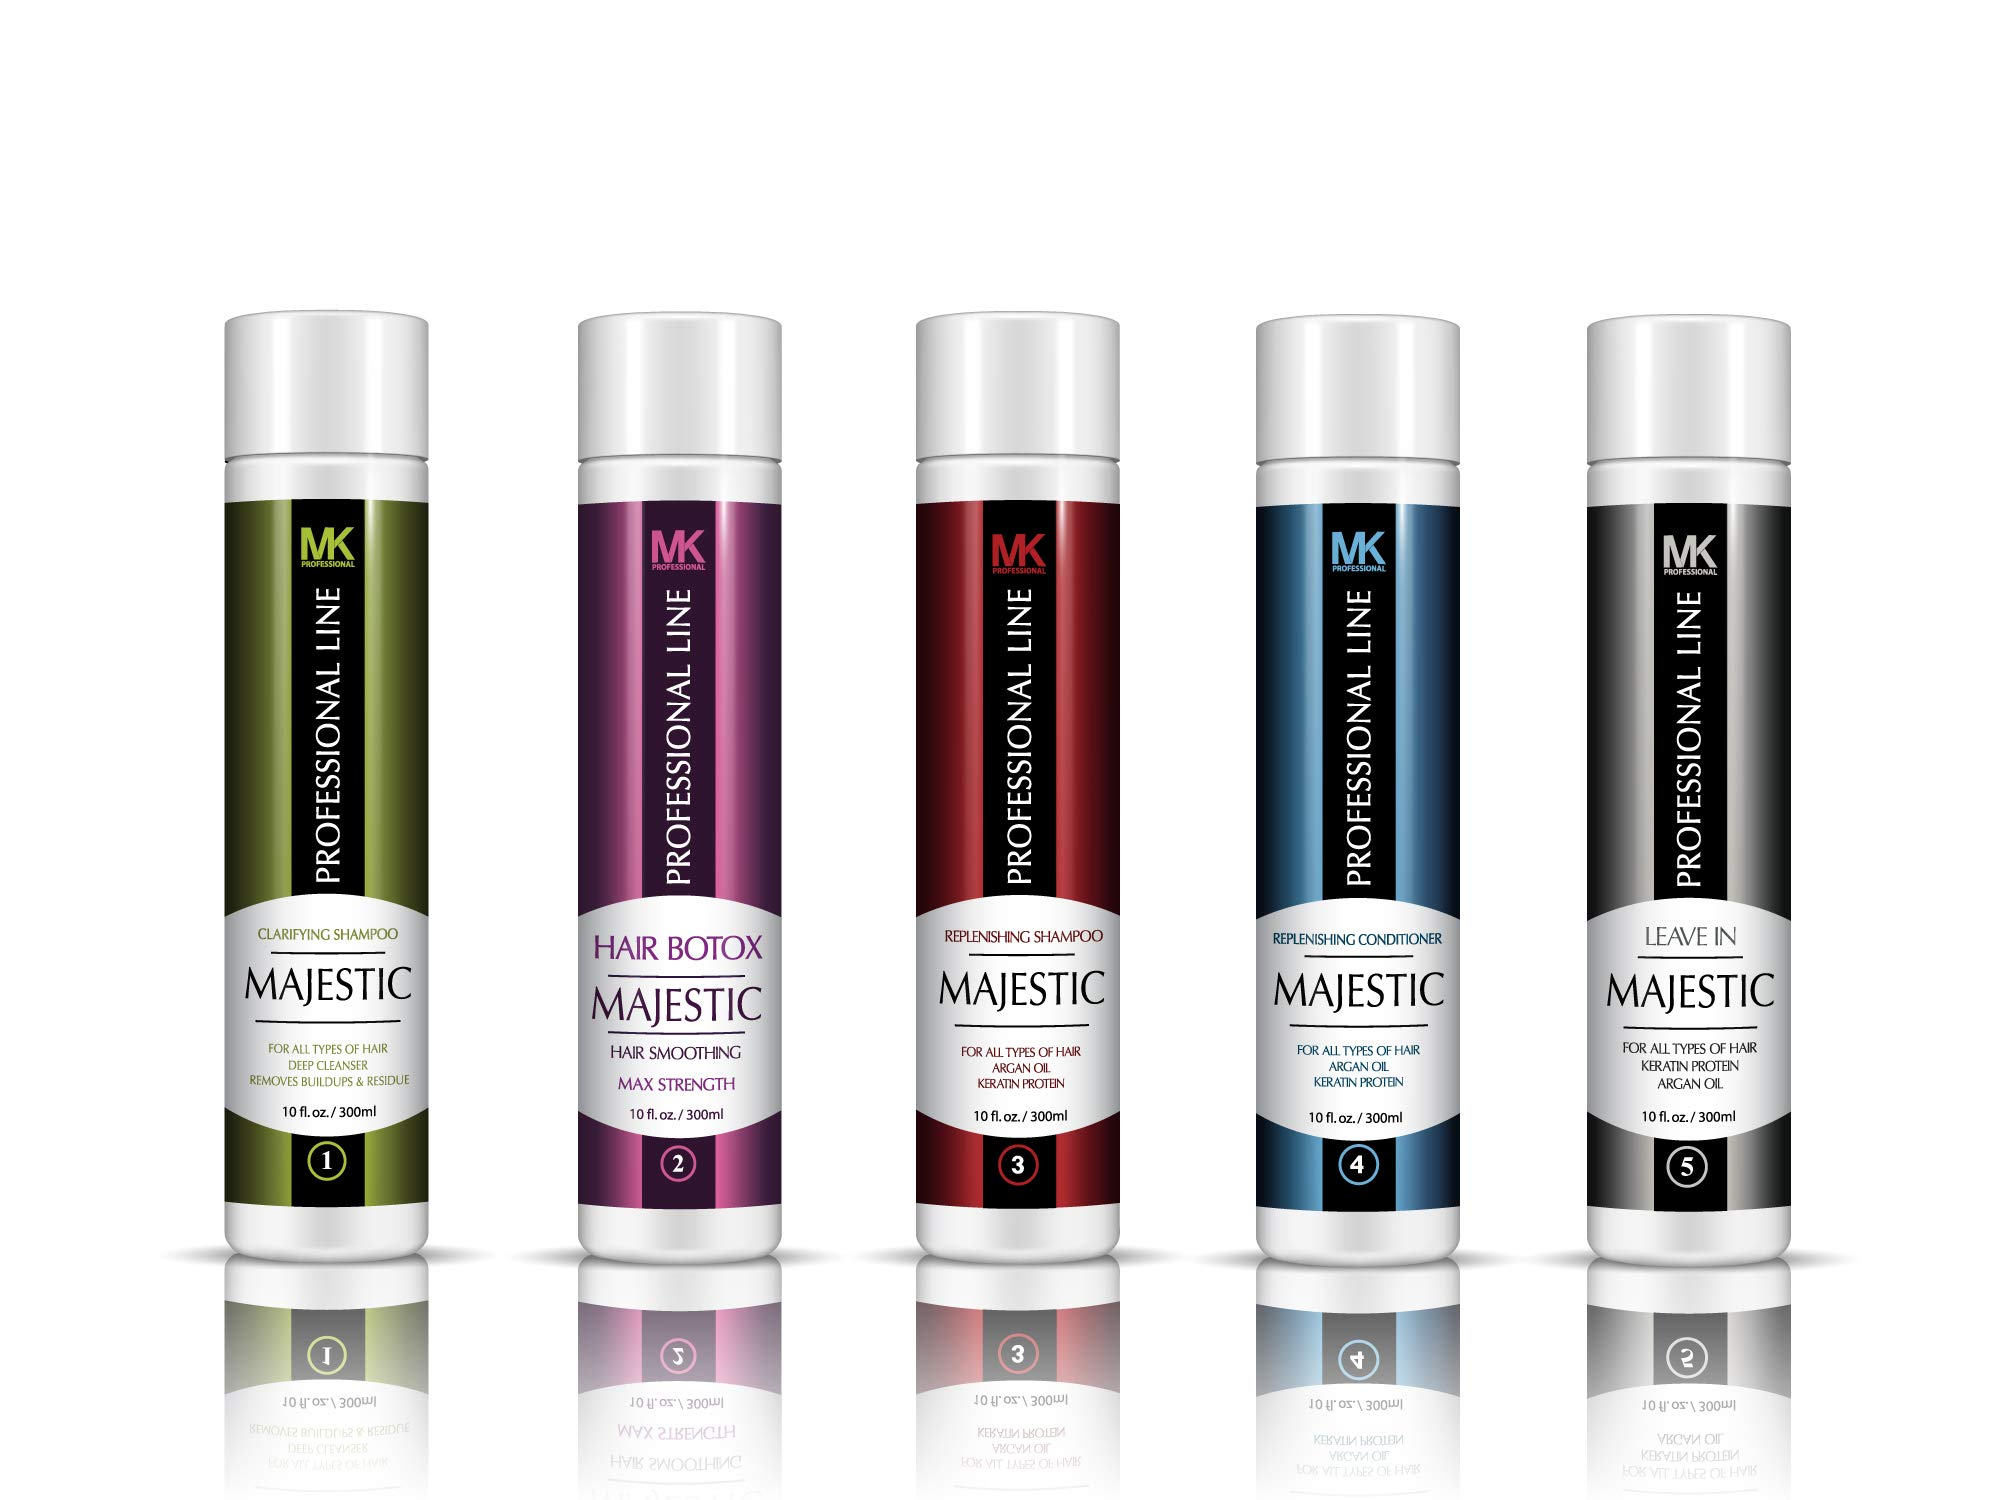 Majestic Hair Botox 300ml (10oz) - Formaldehyde Free - Complete KIT